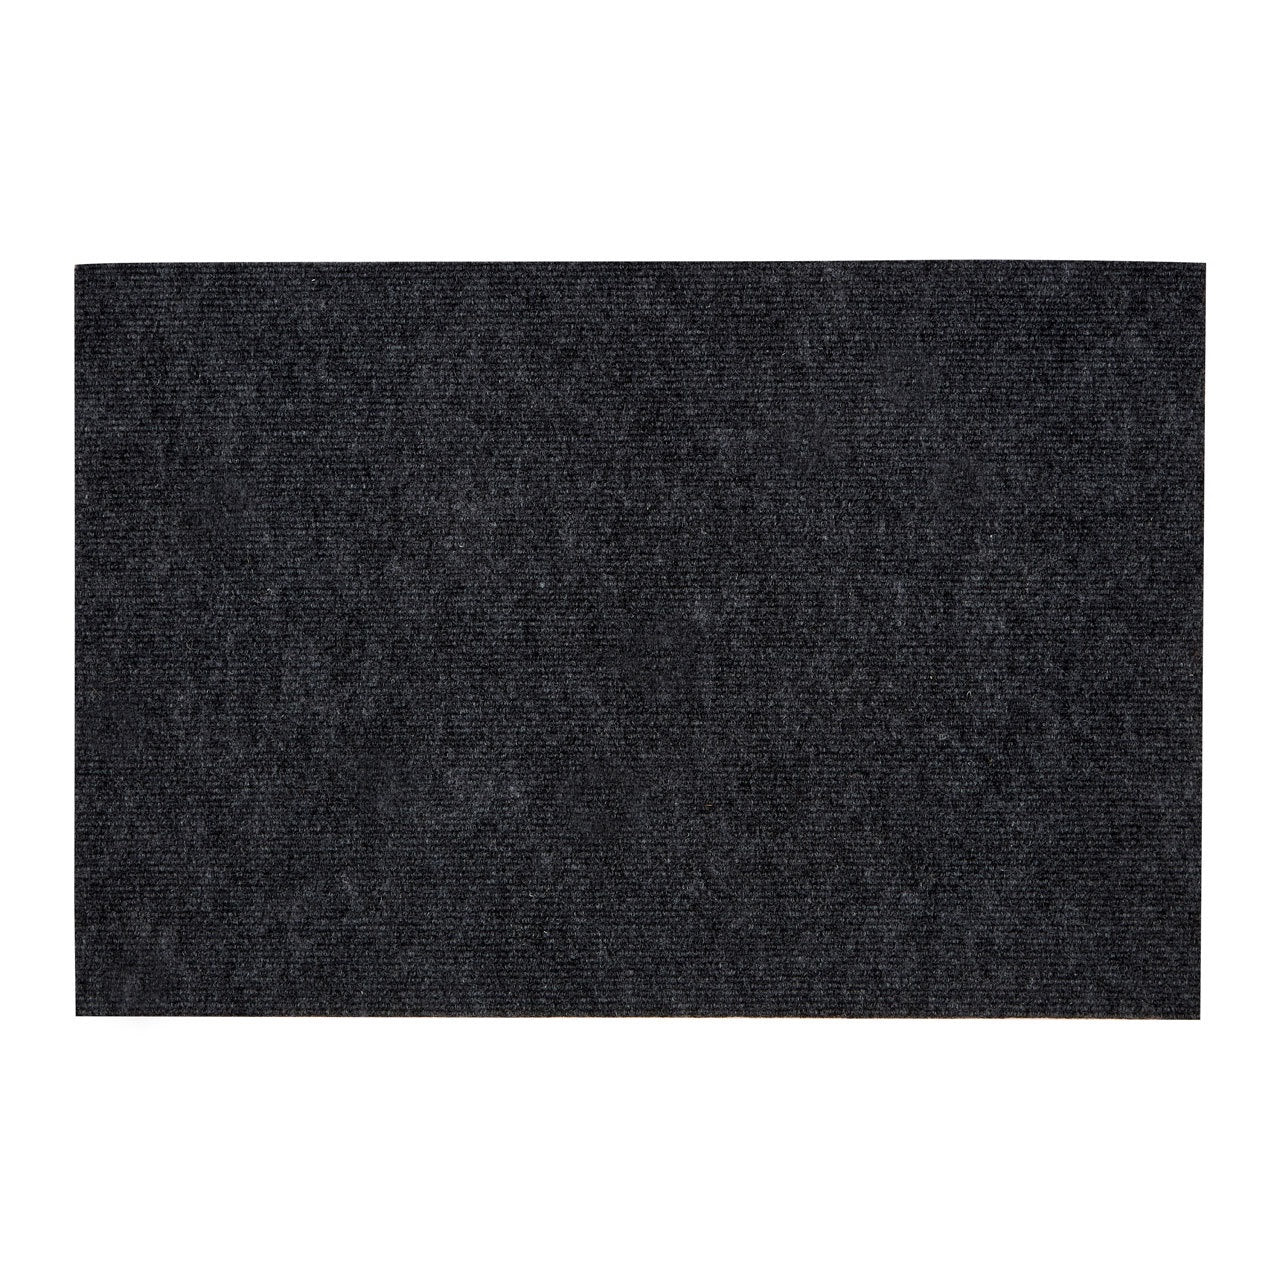 PREMIER DARK GREY DOORMAT 60CM X 40CM - 1901743